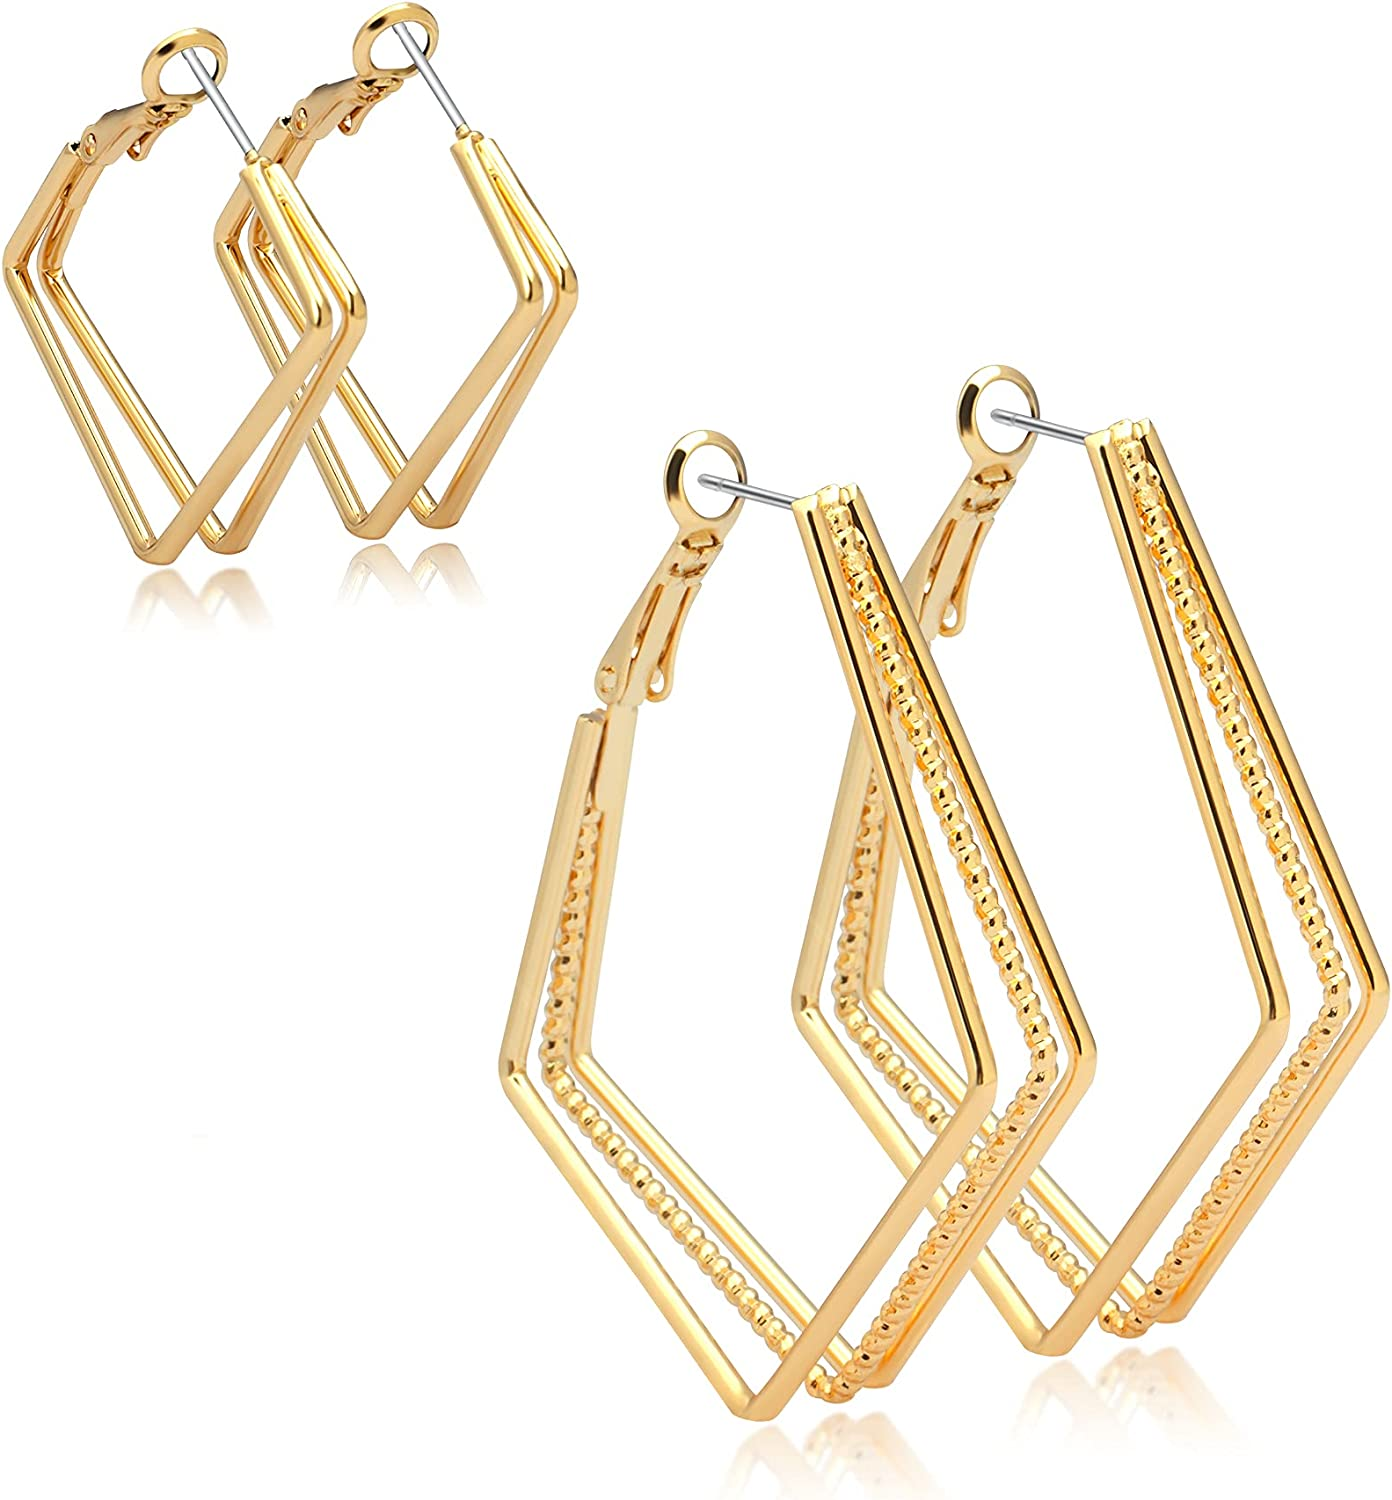 2 Attention brand Pairs Our shop OFFers the best service Geometric Hoop Earrings Square Ea Nymphvesta Double